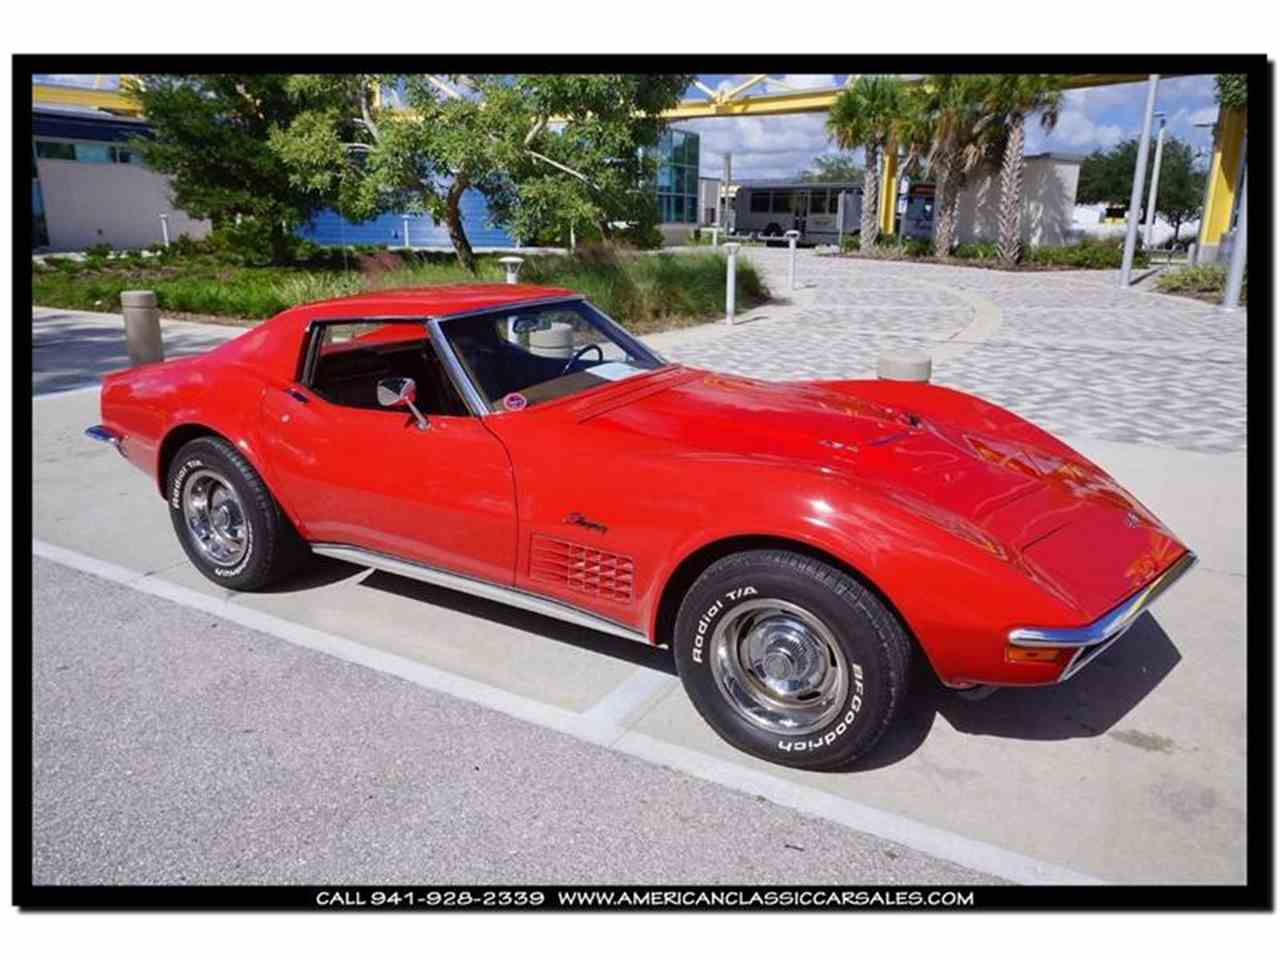 Large Picture of Classic '72 Chevrolet Corvette - $39,590.00 Offered by American Classic Car Sales - FXP2